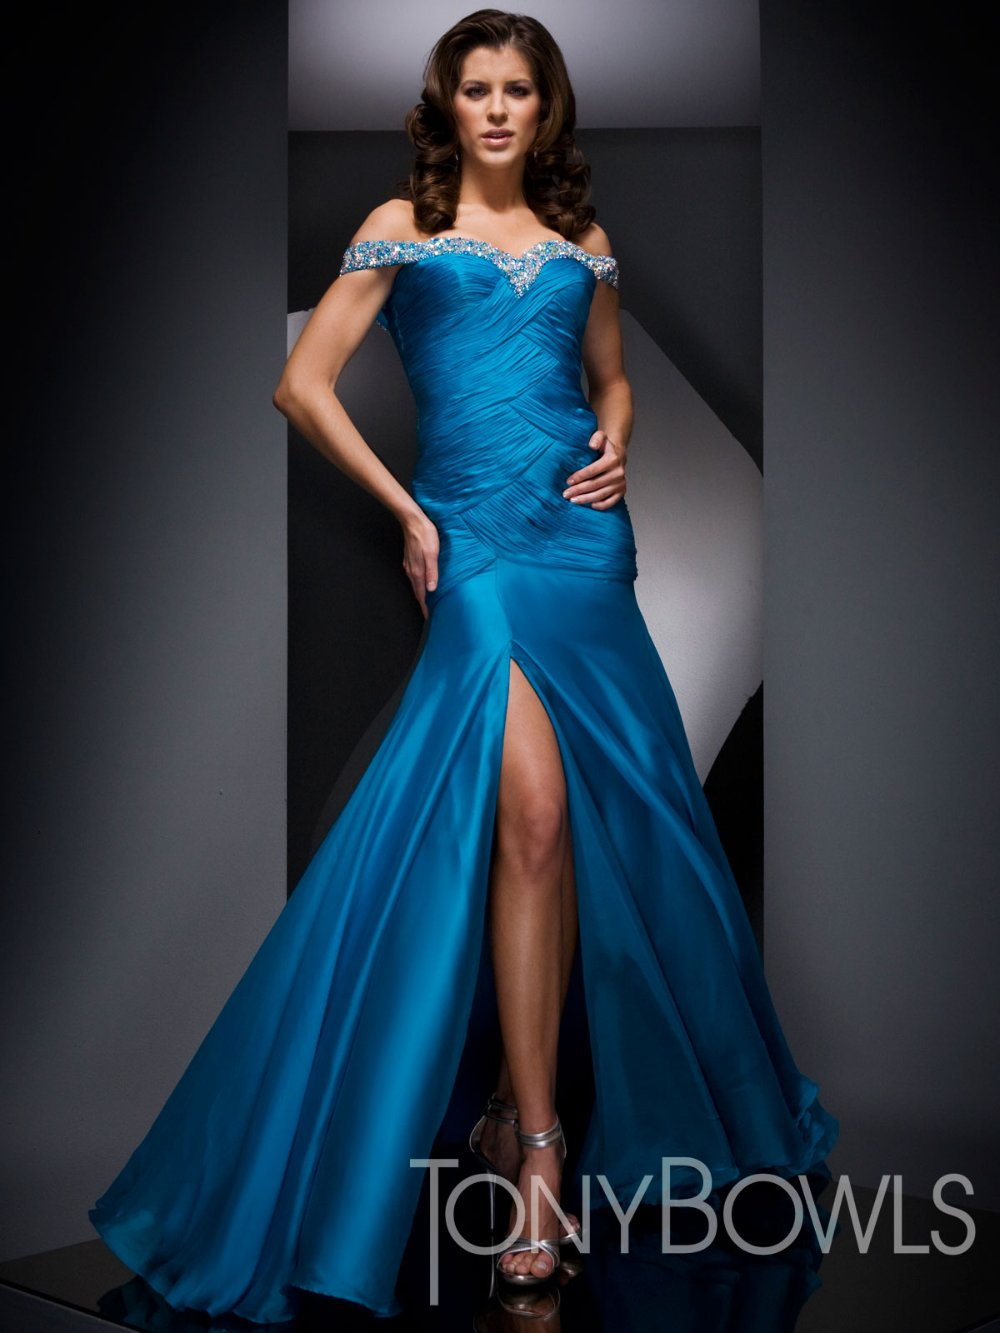 Delighted Turquoise Evening Gowns Ideas - Wedding and flowers ...